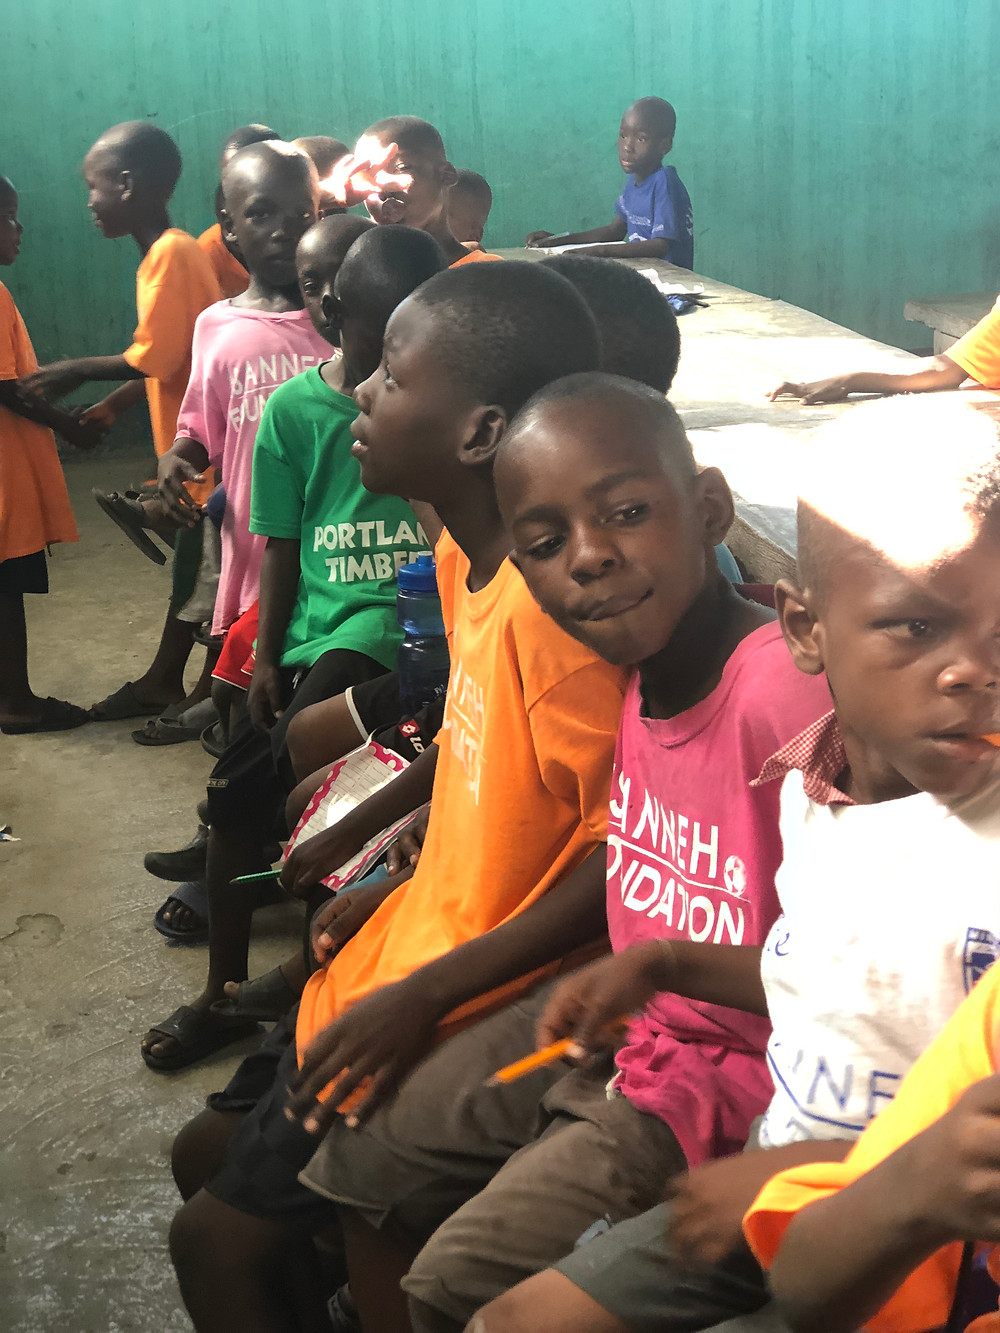 Children in The Sanneh Foundation shirts wait for their English lesson to continue.